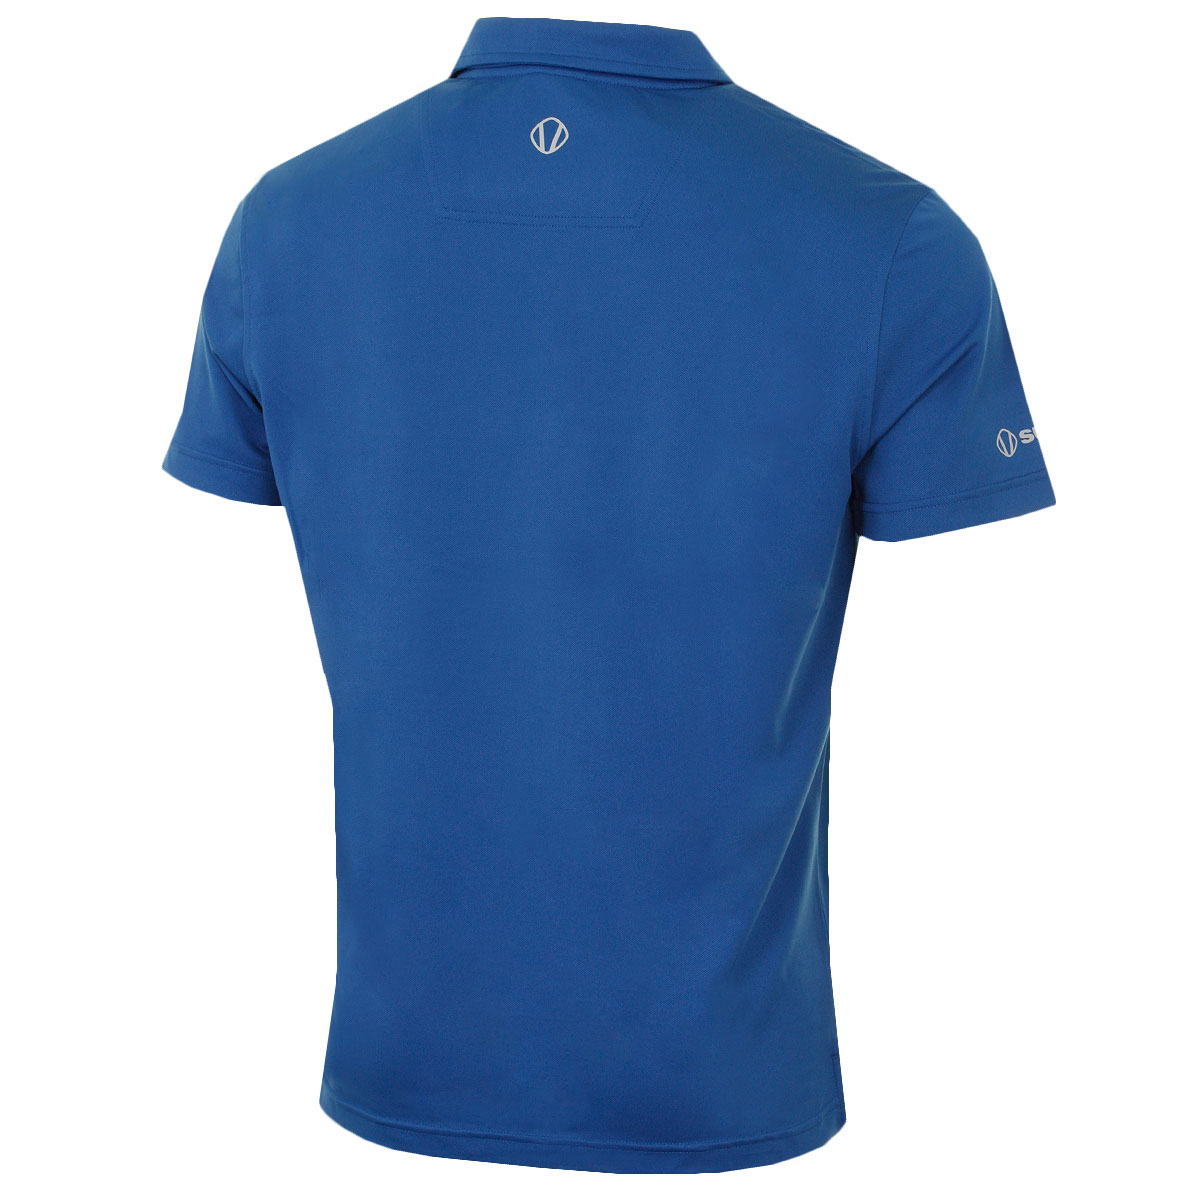 Sunice-Mens-Golf-Rouen-SS-Core-Stretch-Moisture-Wicking-Polo-Shirt-74-OFF-RRP thumbnail 5